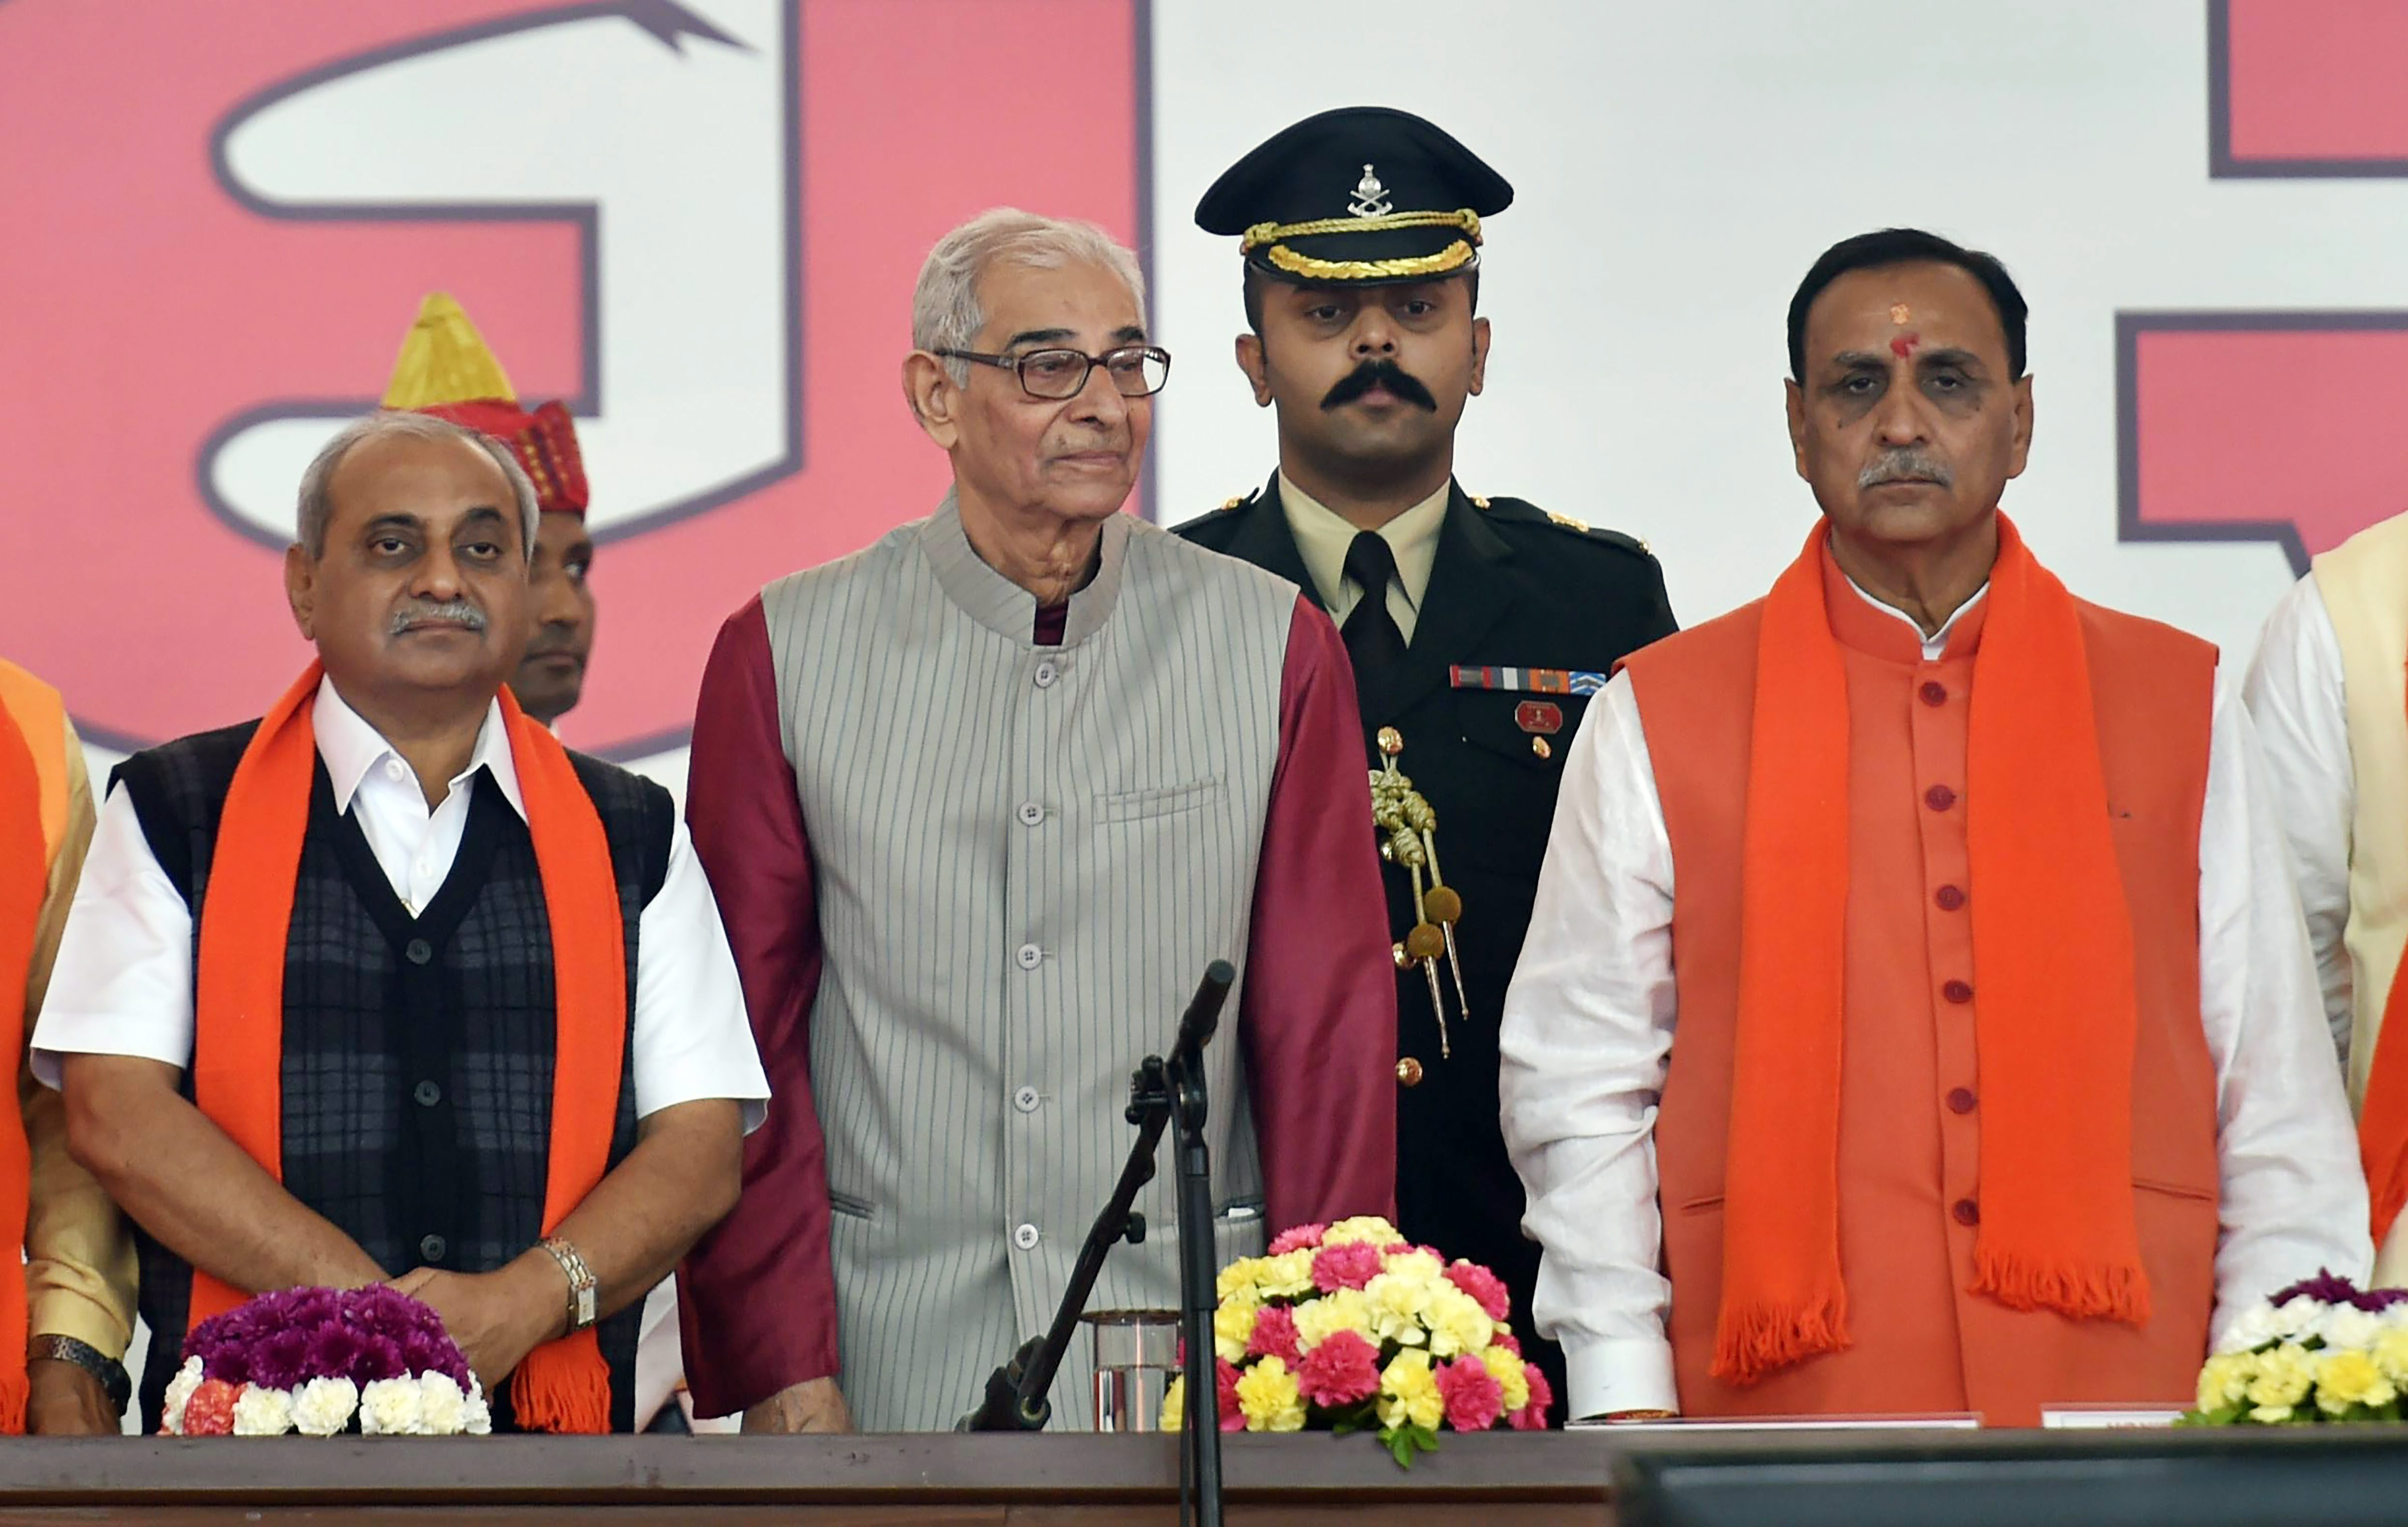 Gandhinagar: Gujarat Chief Minister Vijay Rupani and Deputy CM Nitin Patel along with Governor Om Prakash Kohli during the swearing-in ceremony at Gandhinagar, Ahmedabad on Tuesday. PTI Photo by Santosh Hirlekar (PTI12_26_2017_000036B)